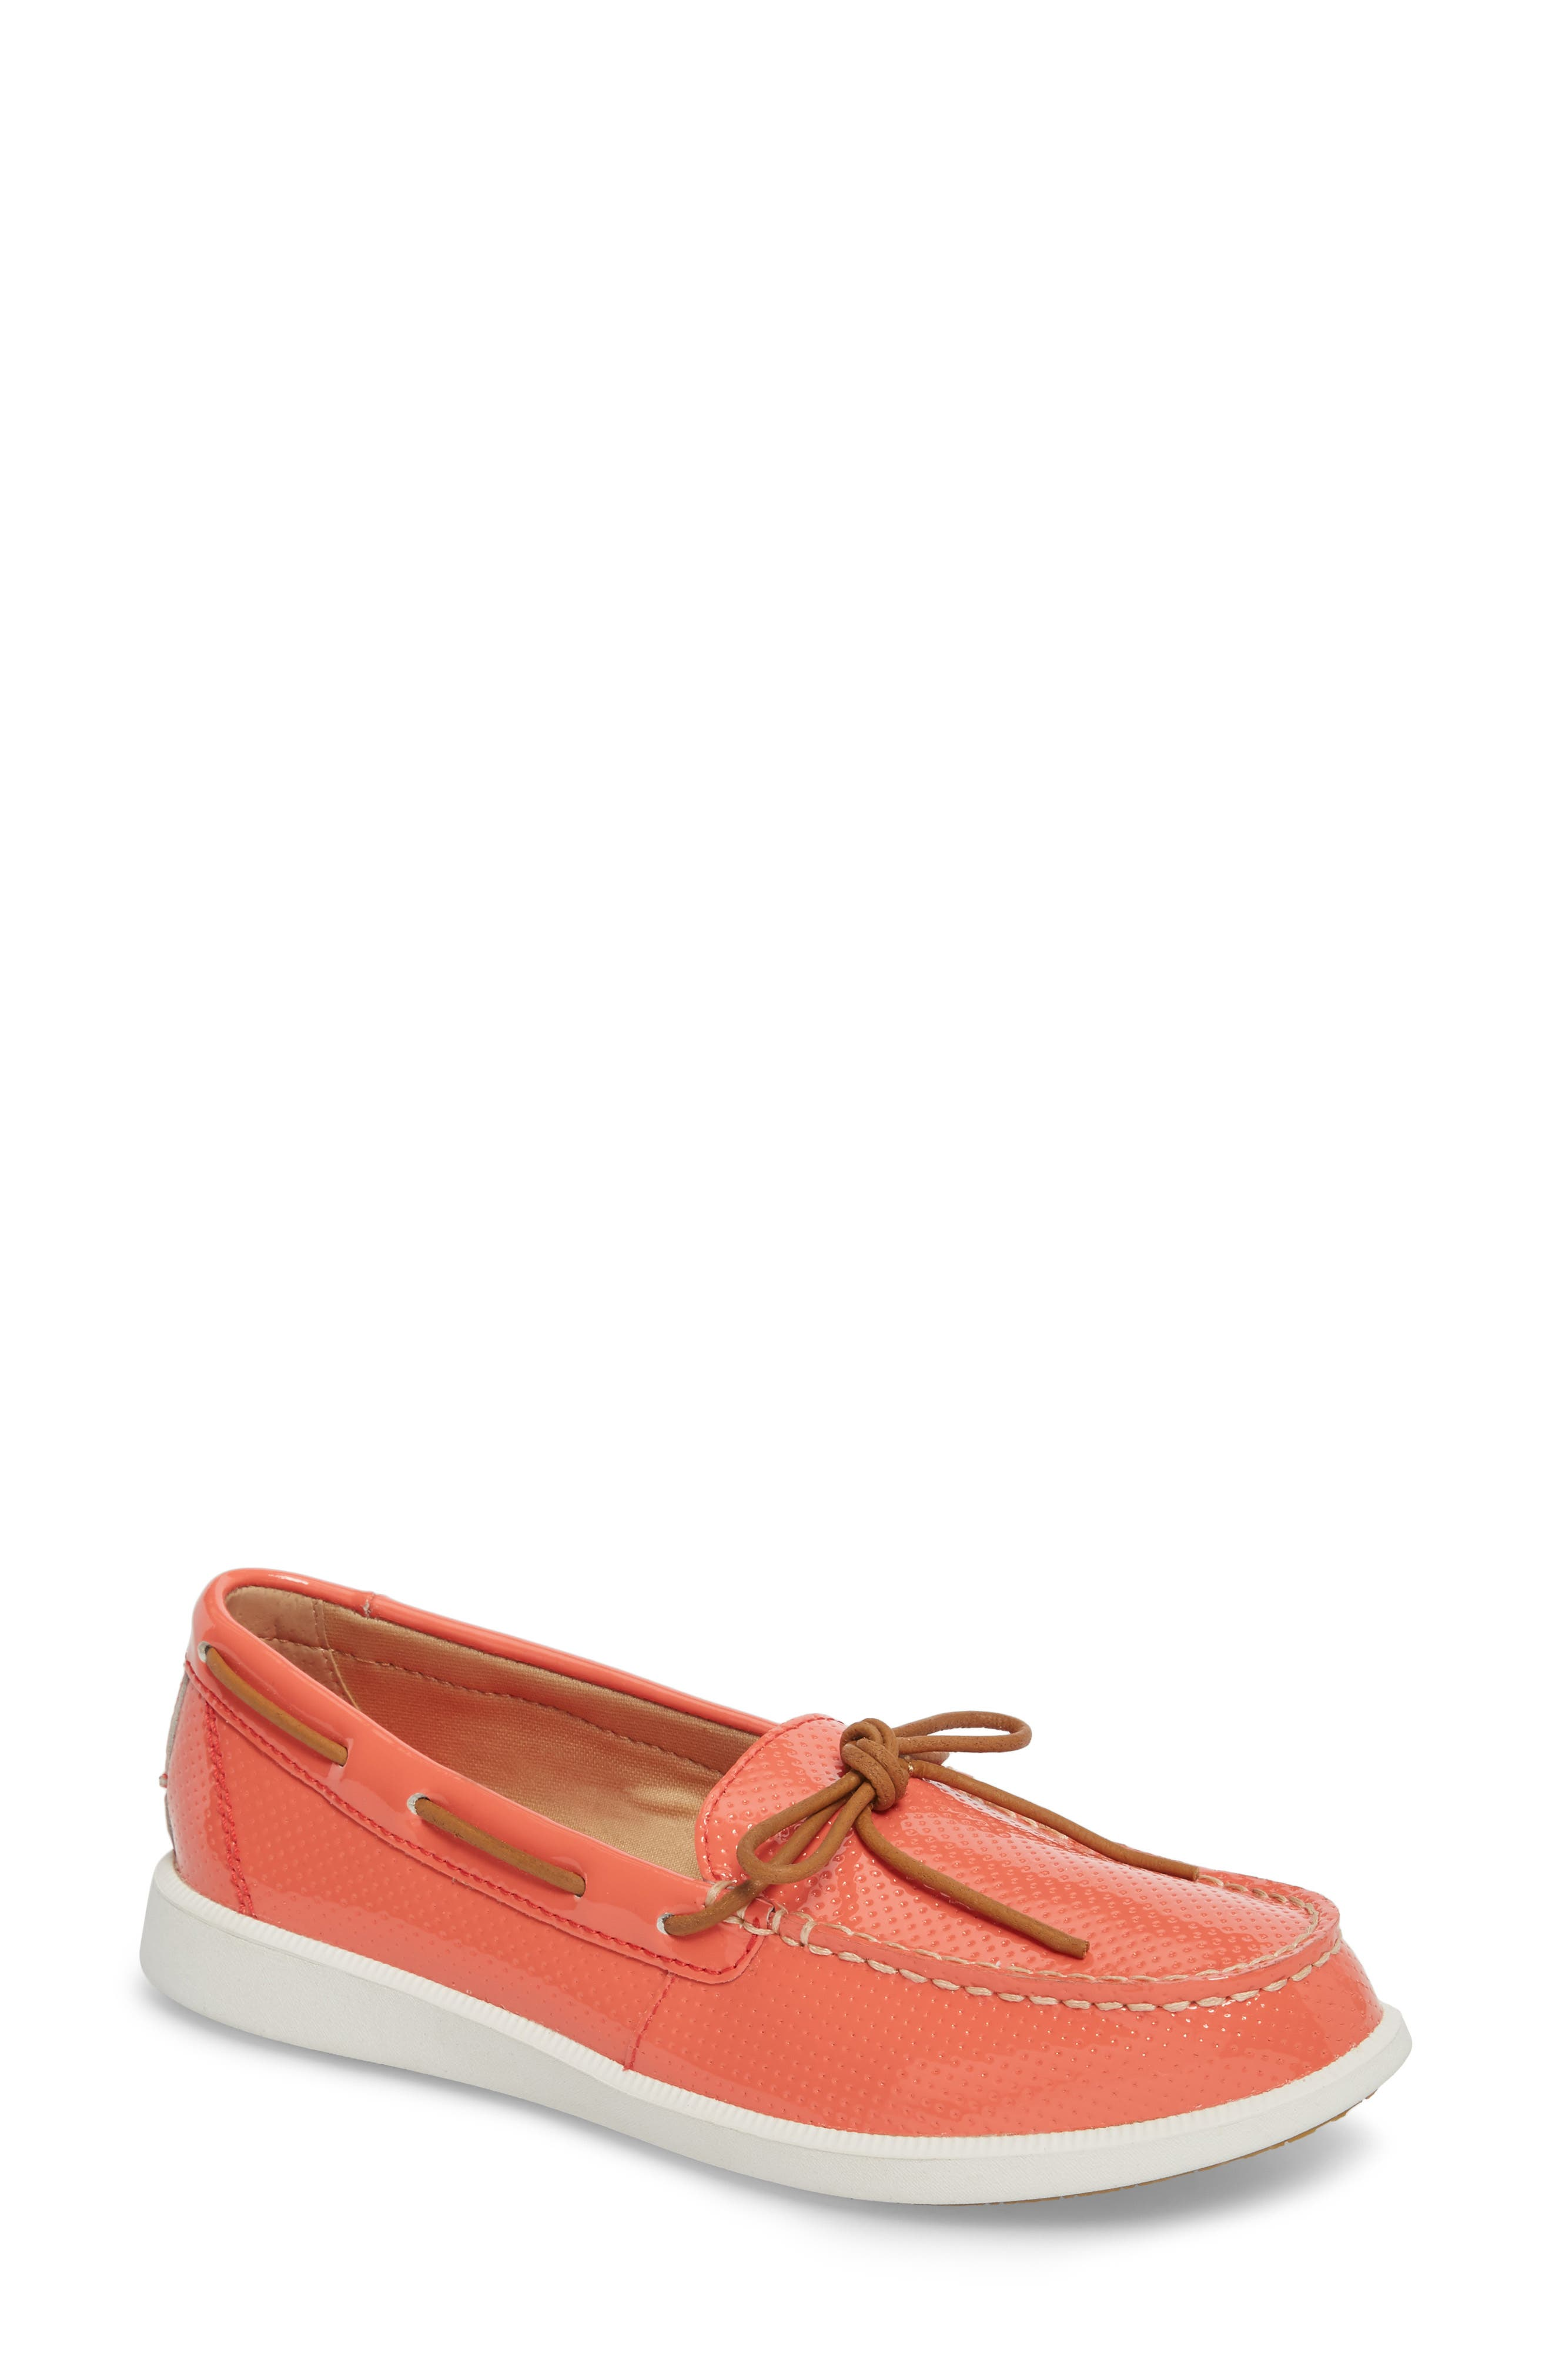 Oasis Boat Shoe,                             Main thumbnail 1, color,                             Coral Patent Leather